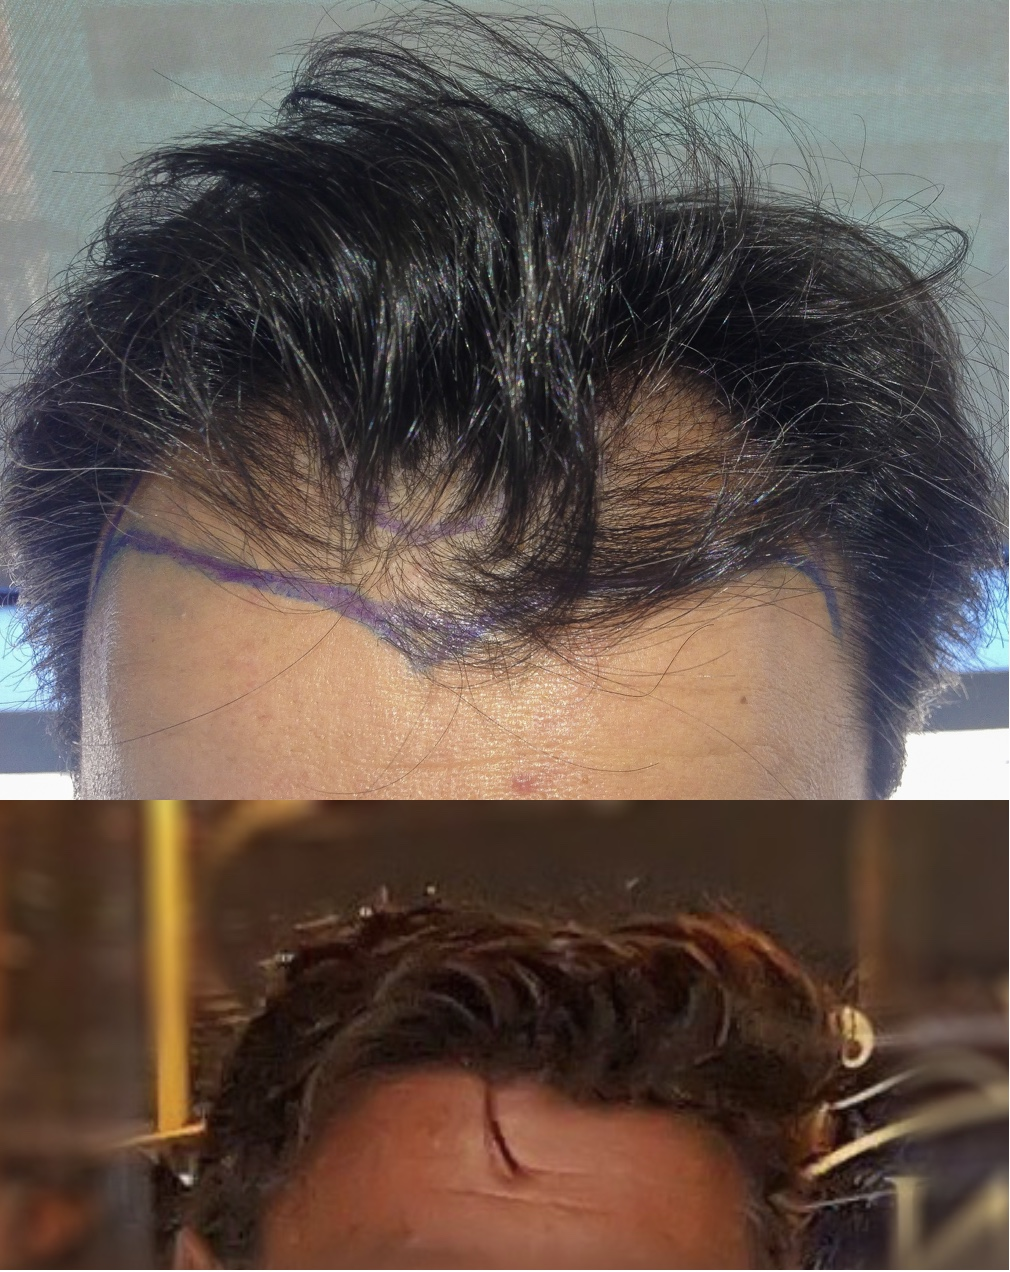 Copy Of Copy Of Results Dr Bruno Ferreira Leading Edge Hair Transplant Surgery